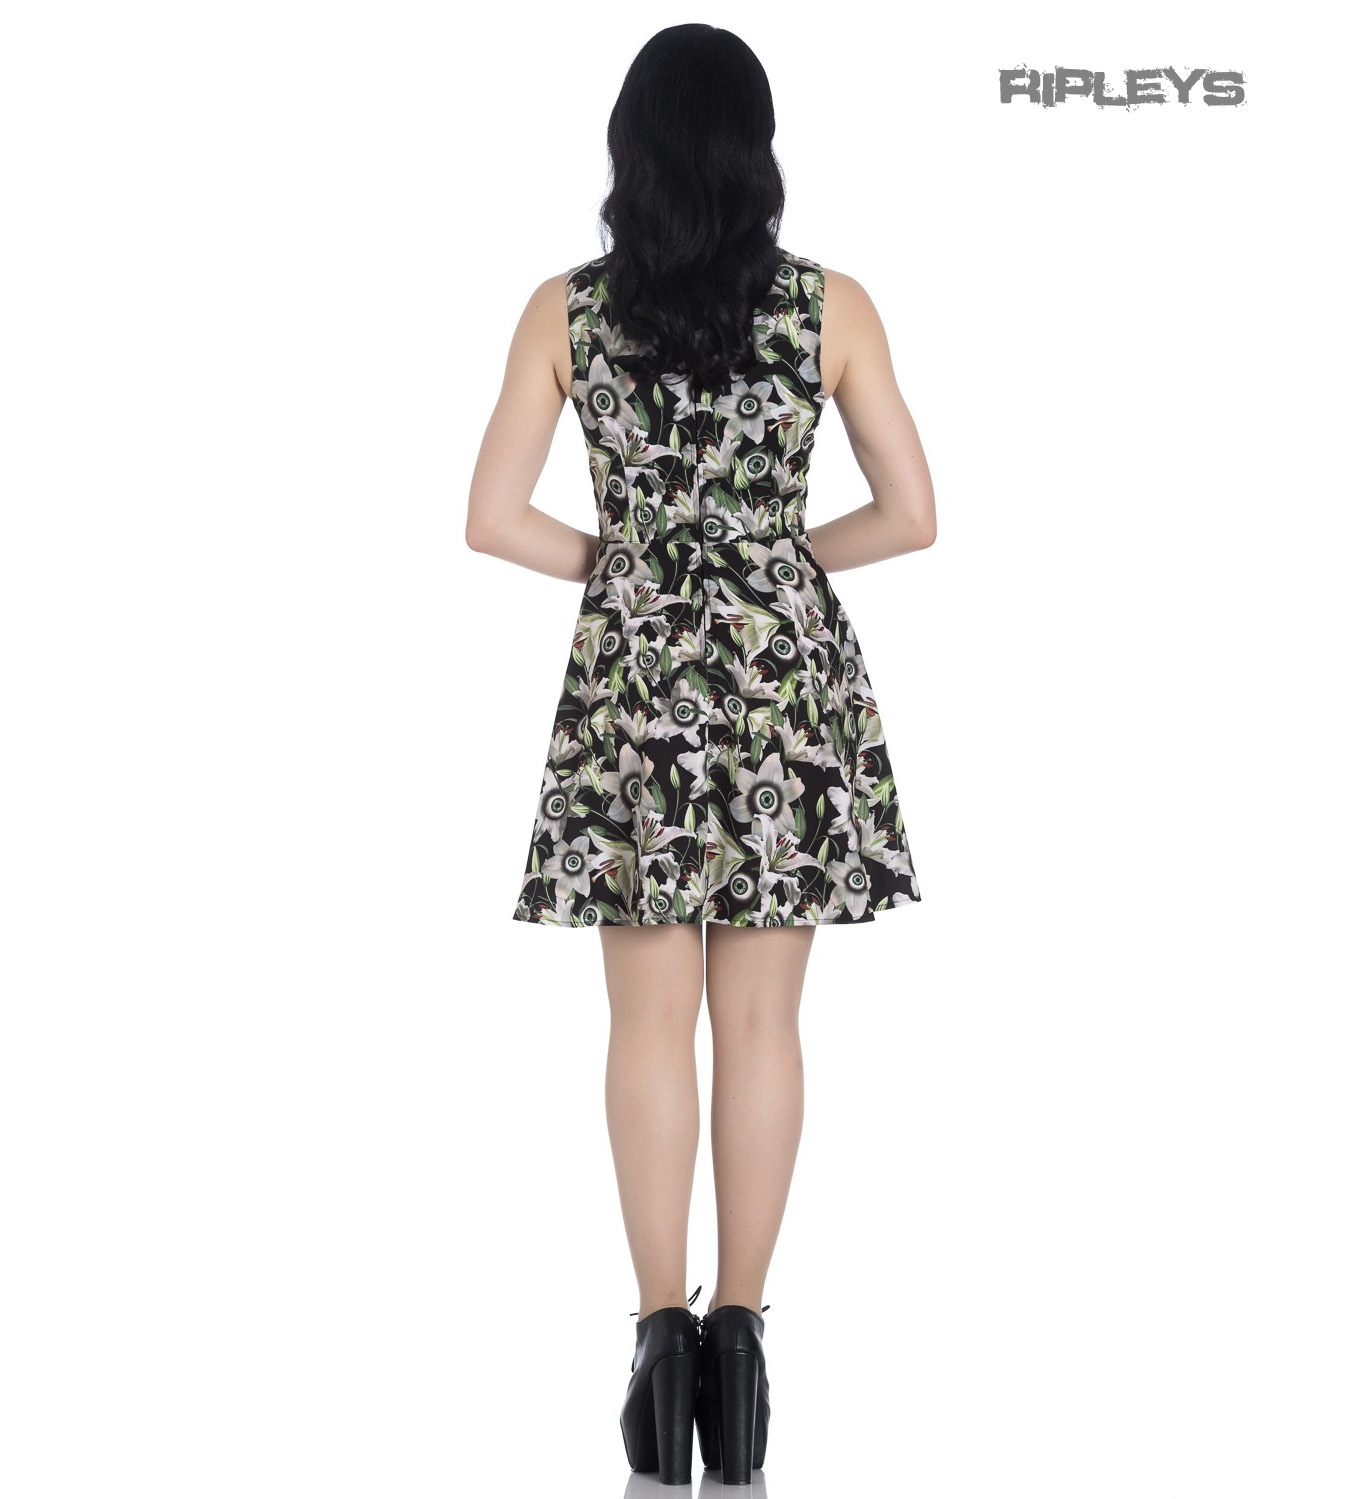 Hell-Bunny-Black-Lace-Up-Goth-Punk-Mini-Dress-PEEPERS-Eyeballs-Flowers-All-Sizes thumbnail 12